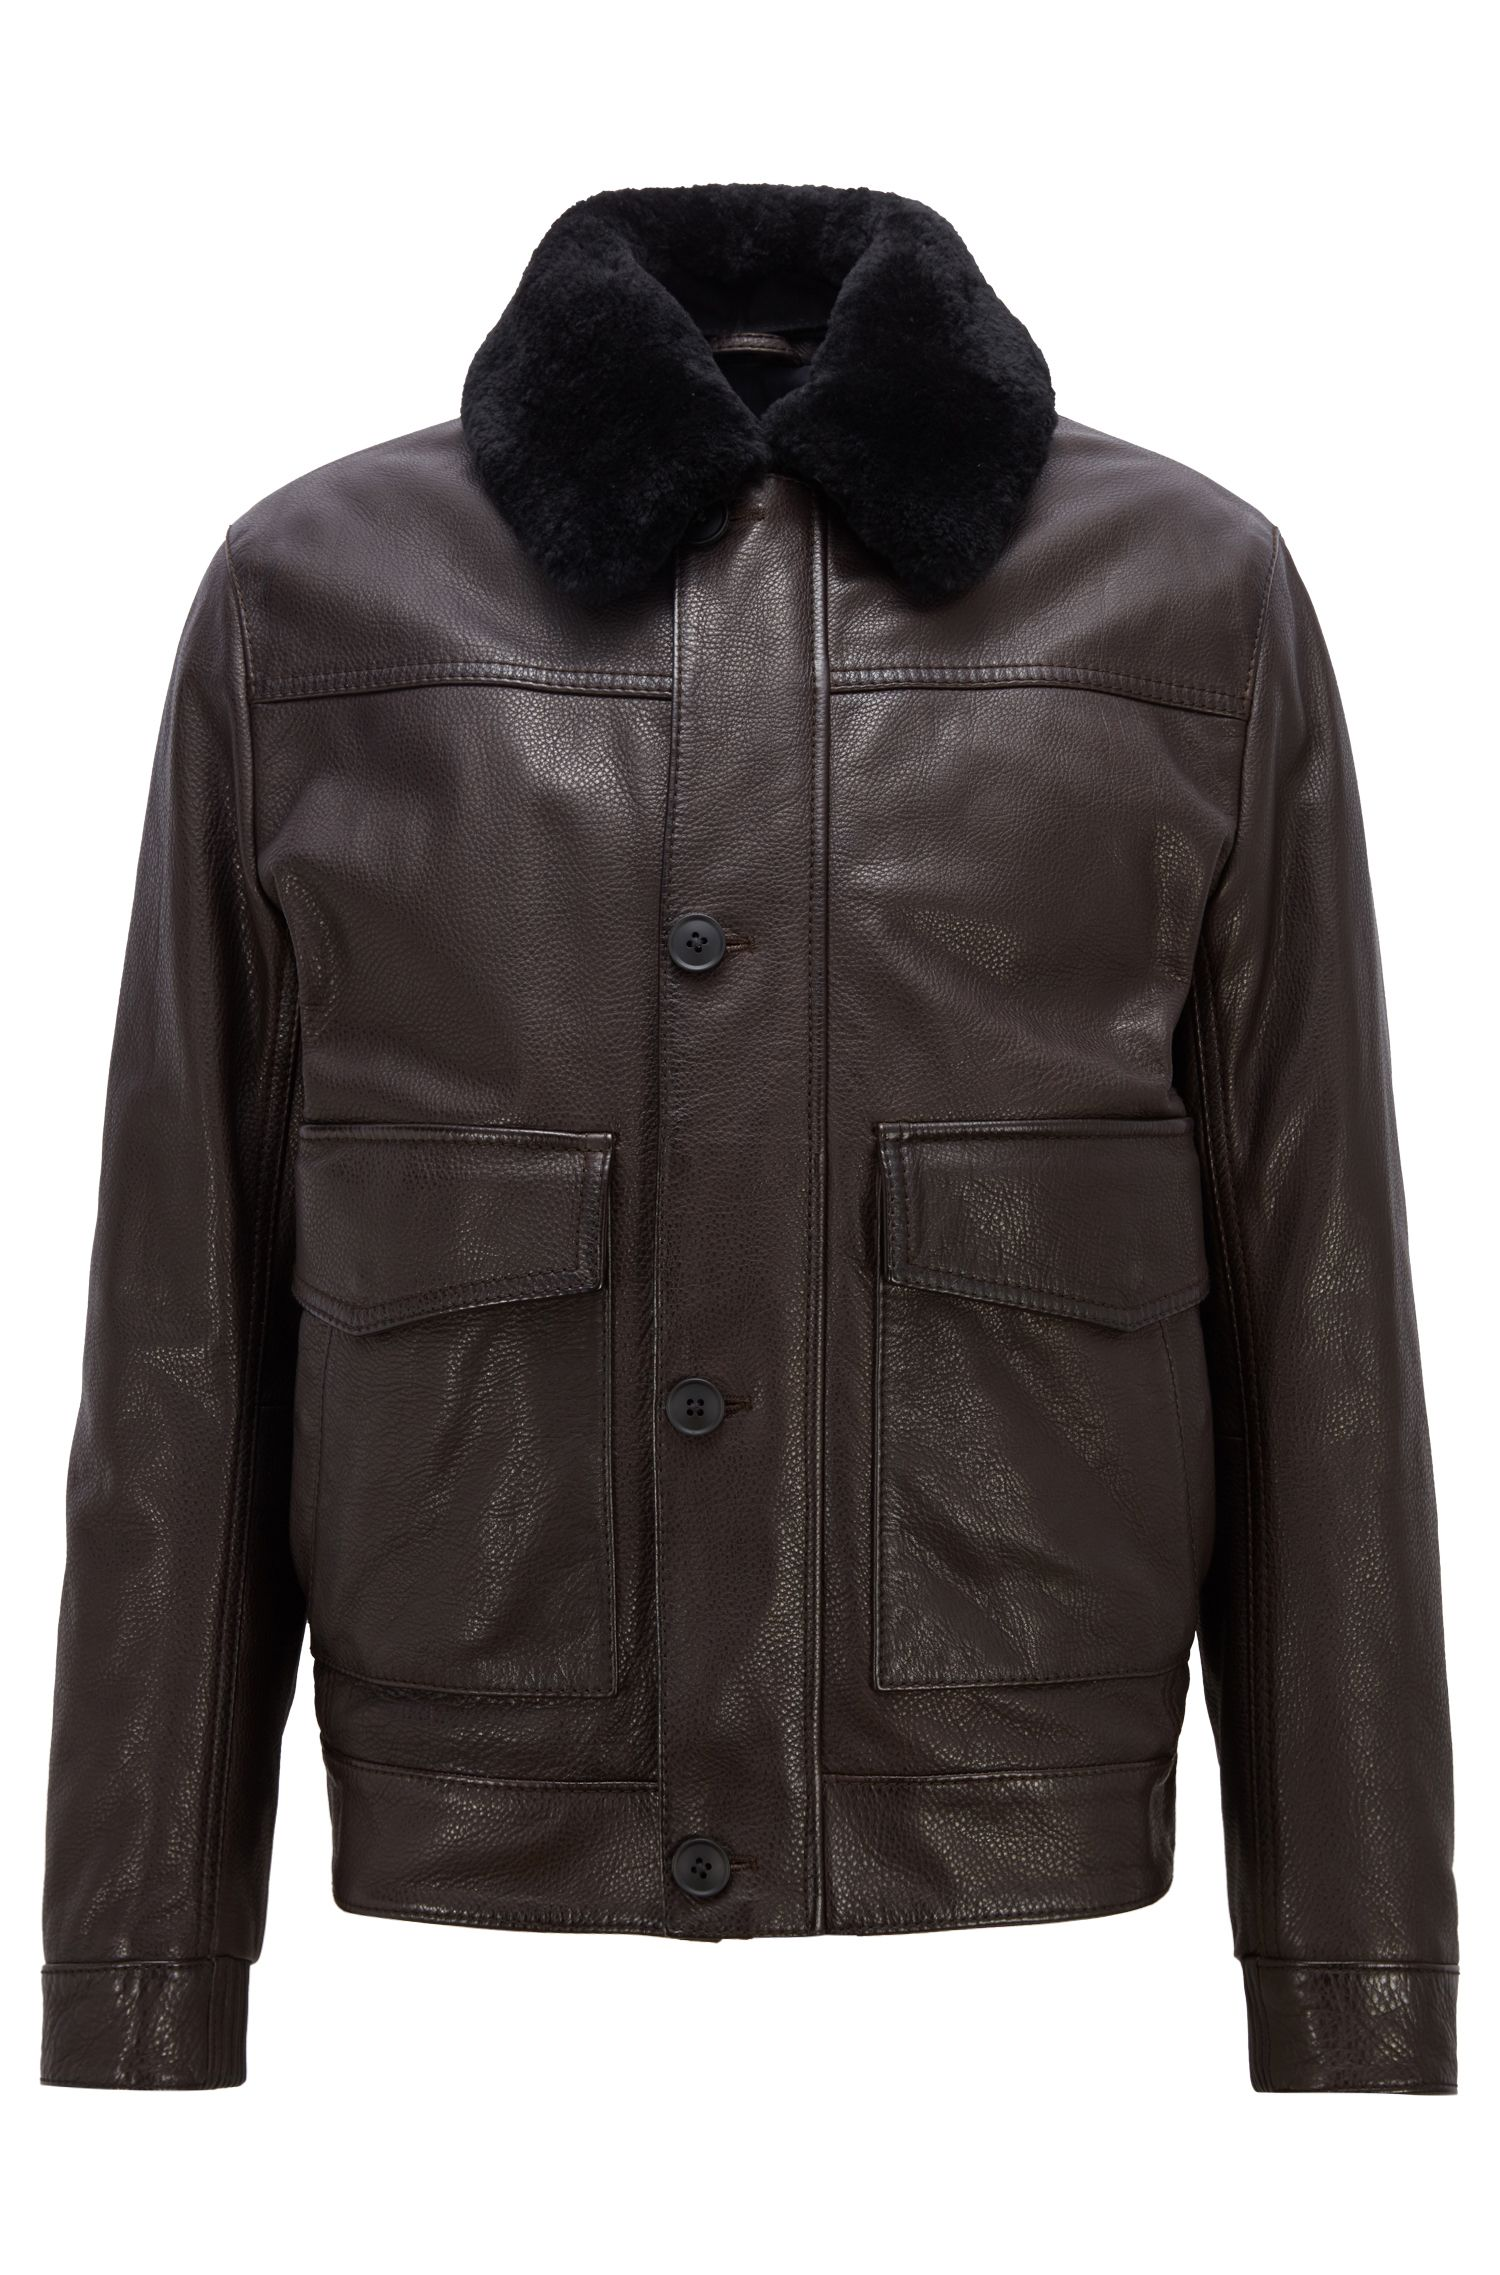 Giubbotto stile aviatore slim fit in pelle zigrinata con colletto in shearling, Marrone scuro